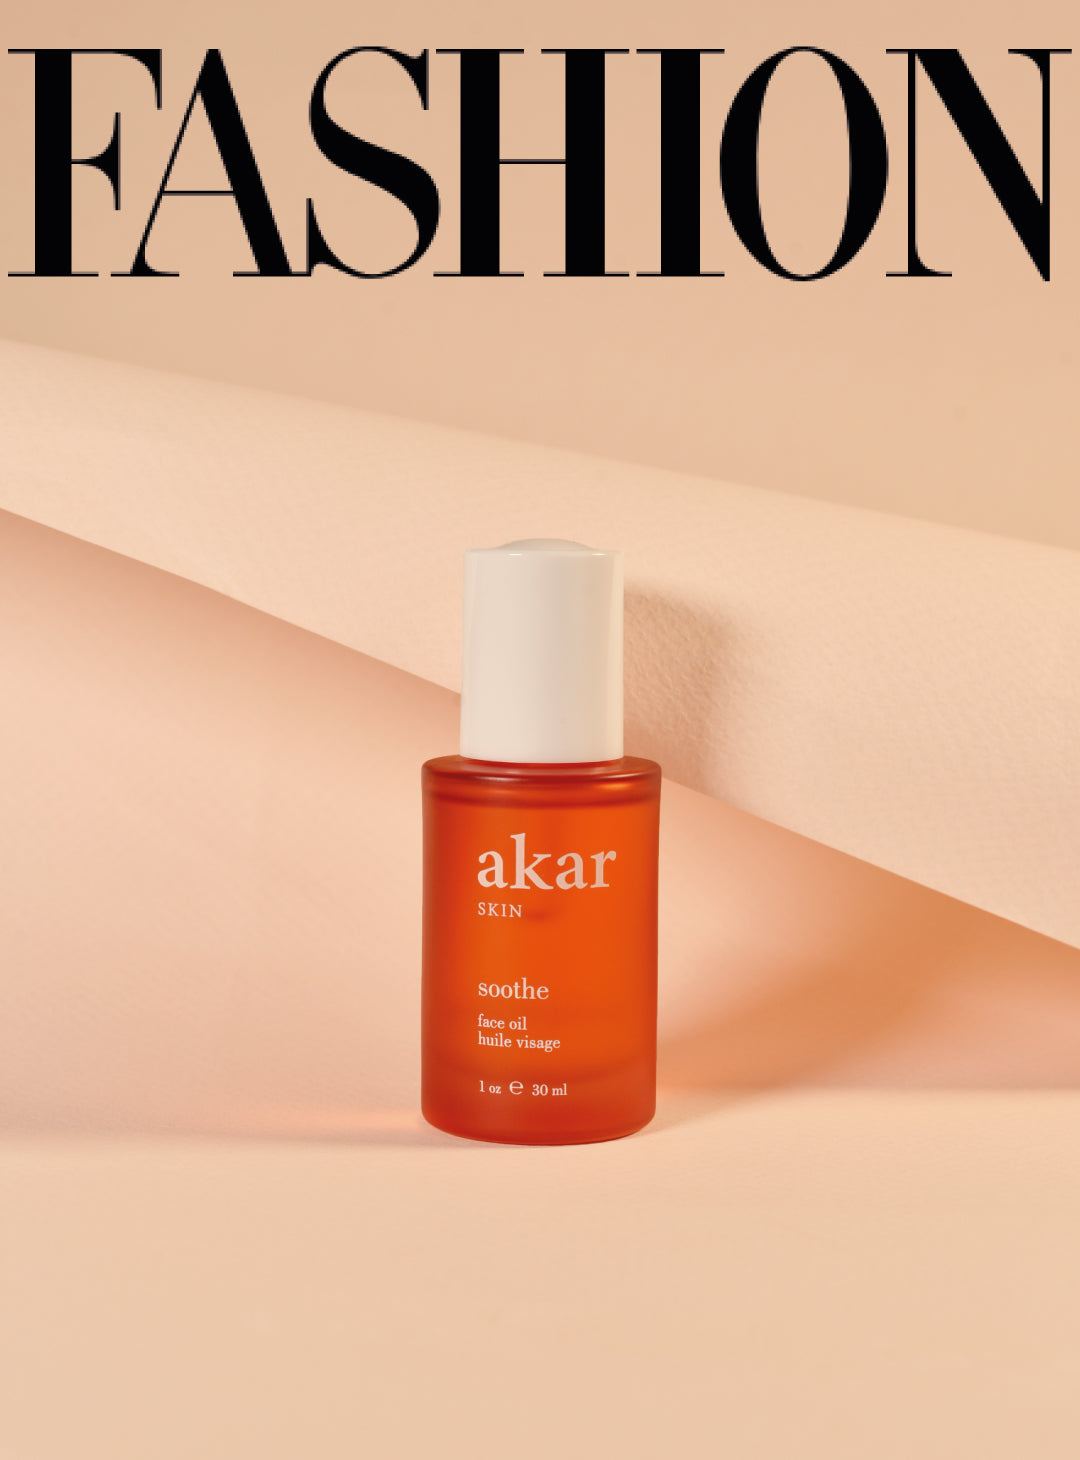 Fashion, magazine, soothe, face oil, akar skin